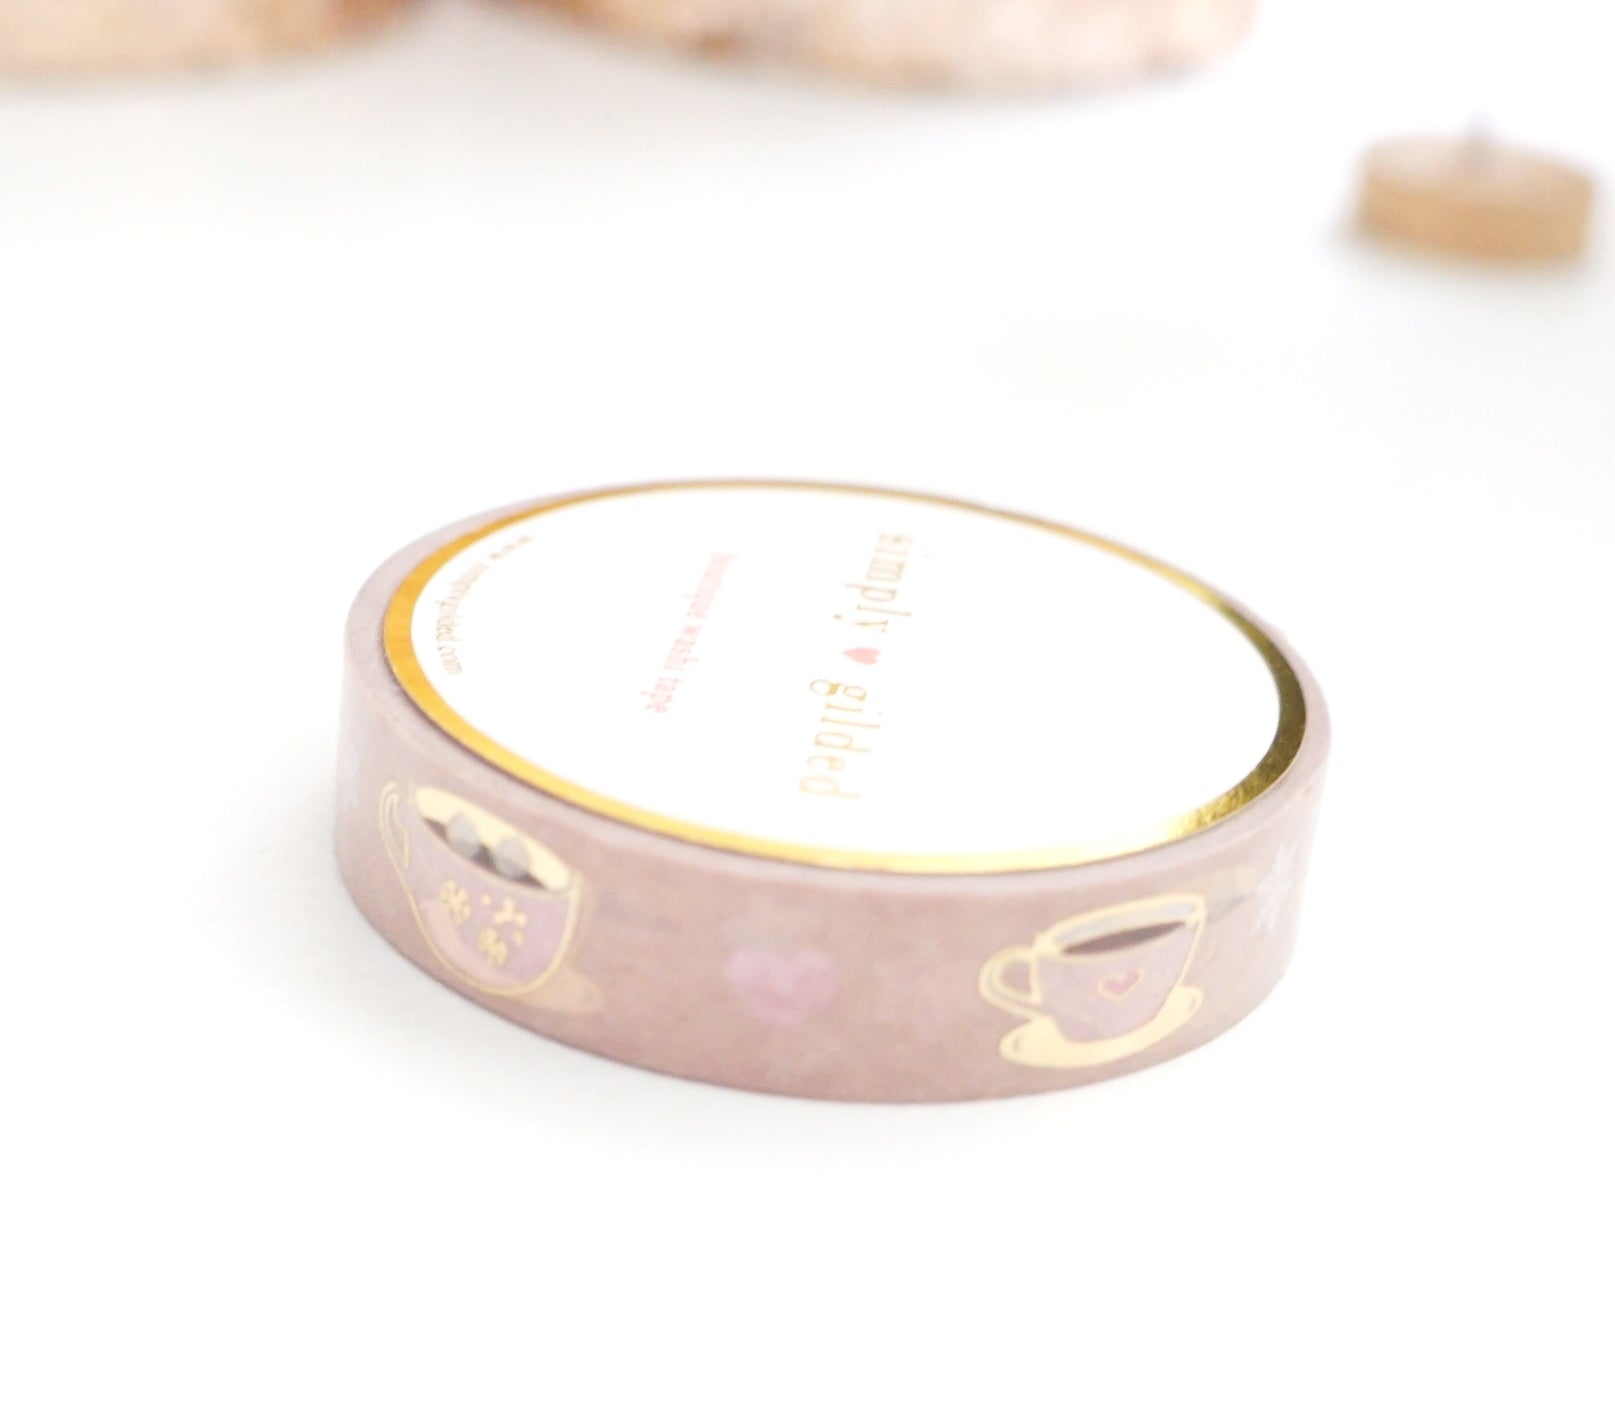 WASHI TAPE 10mm - HOT COCOA HUGS + LT. GOLD foil (November 19 Holiday Release)